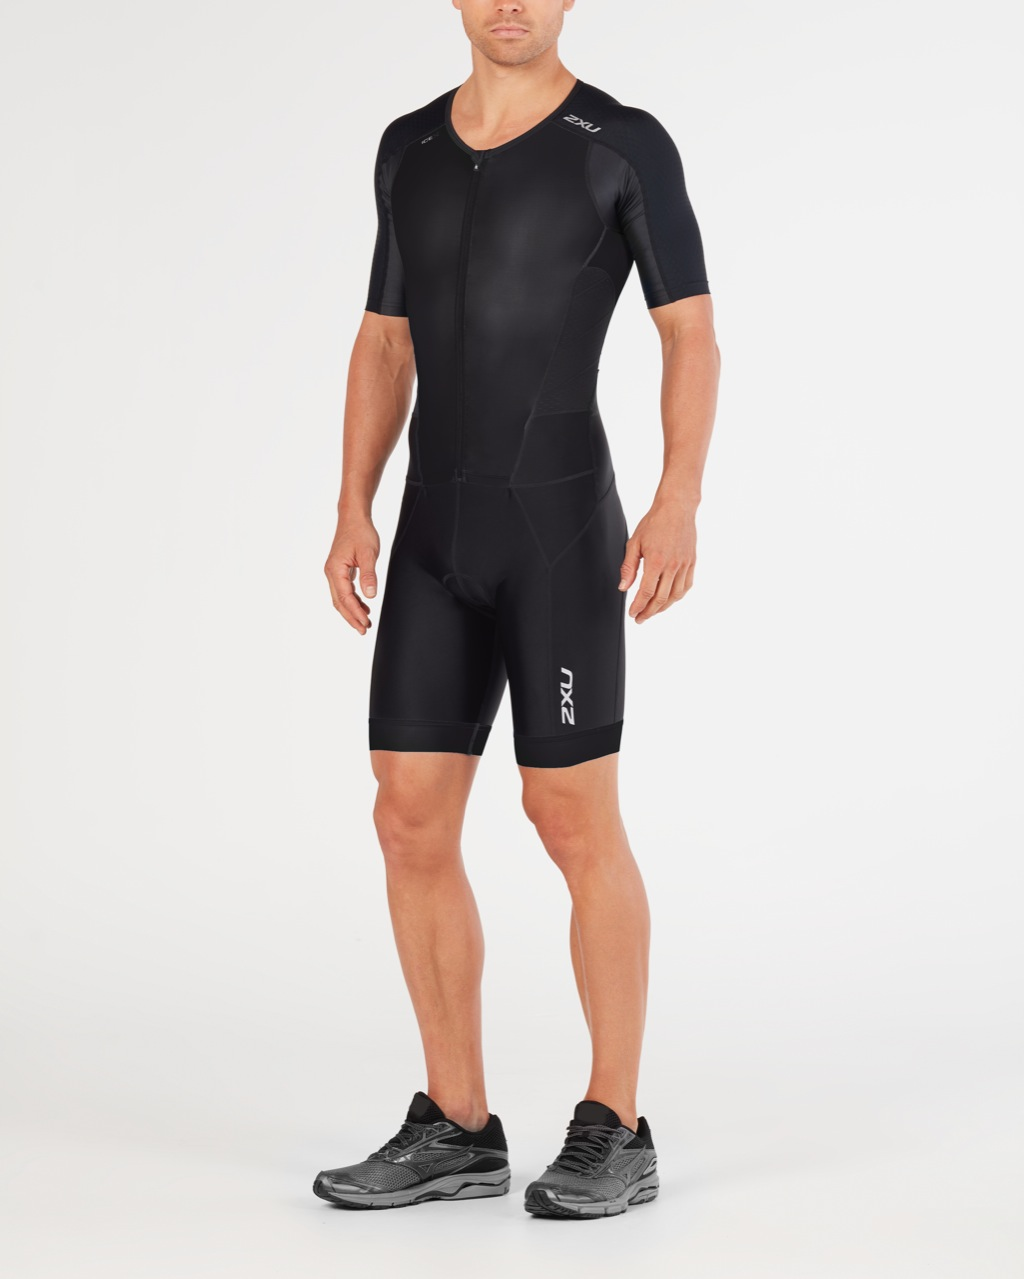 BODY 2XU MEN'S PERFORM FULL ZIP SLEEVED TRISUIT MT4847d black black.jpg